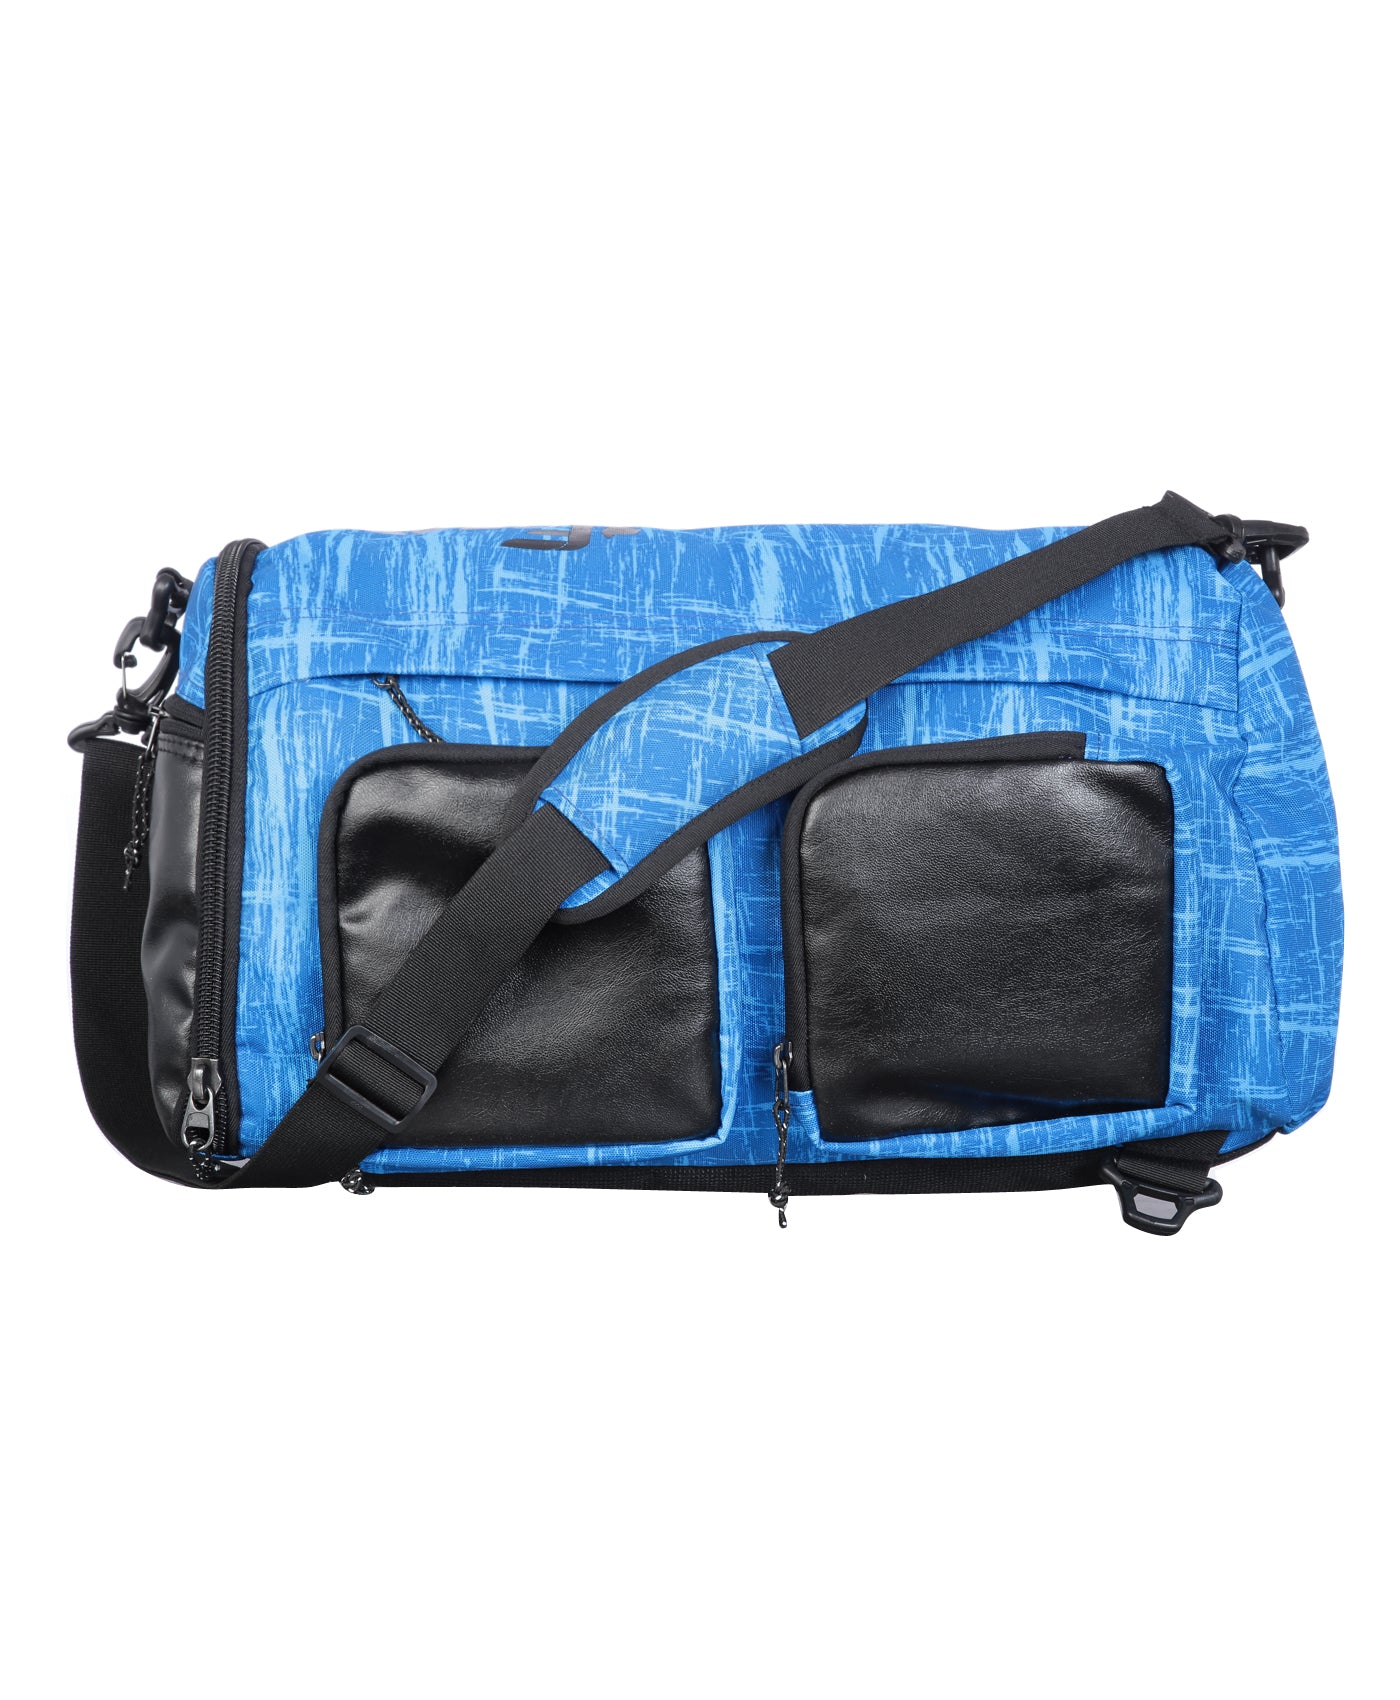 F Gear Xtreme Polyester 50 Ltrs Blue Travel Duffle (2562)